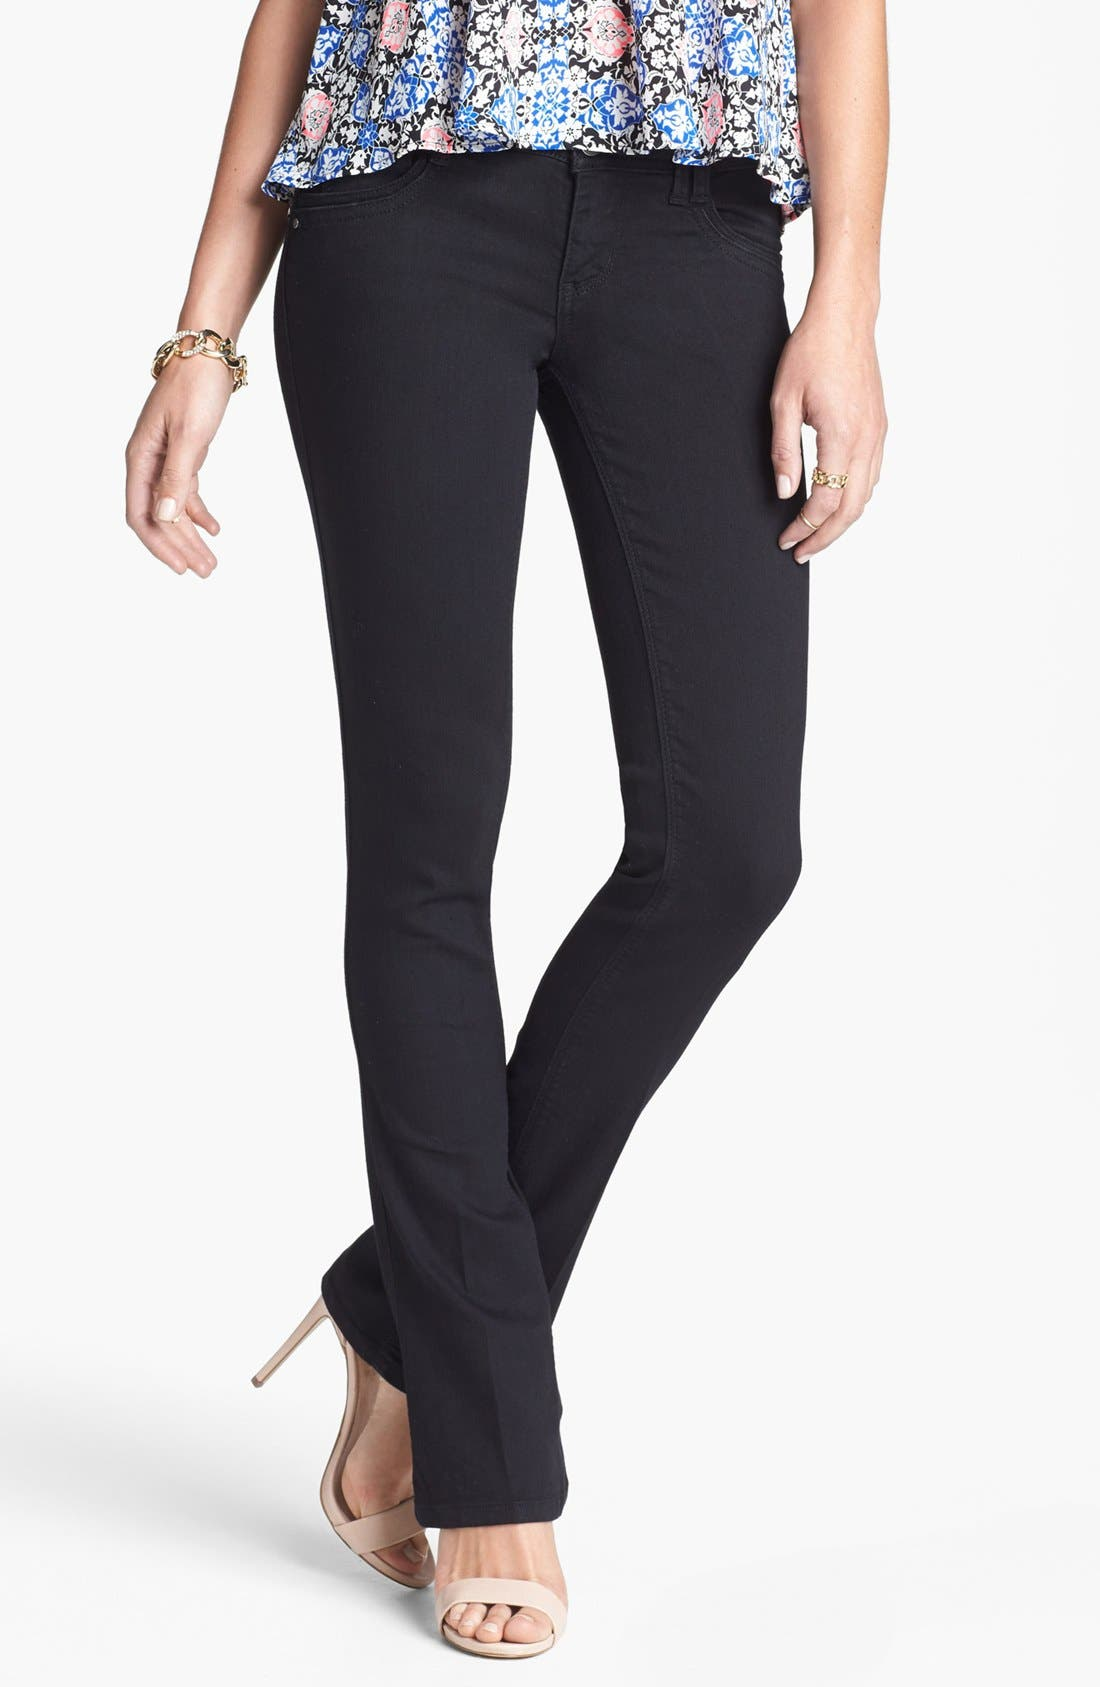 Alternate Image 1 Selected - Jolt Stretch Bootcut Jeans (Black) (Juniors) (Online Only)